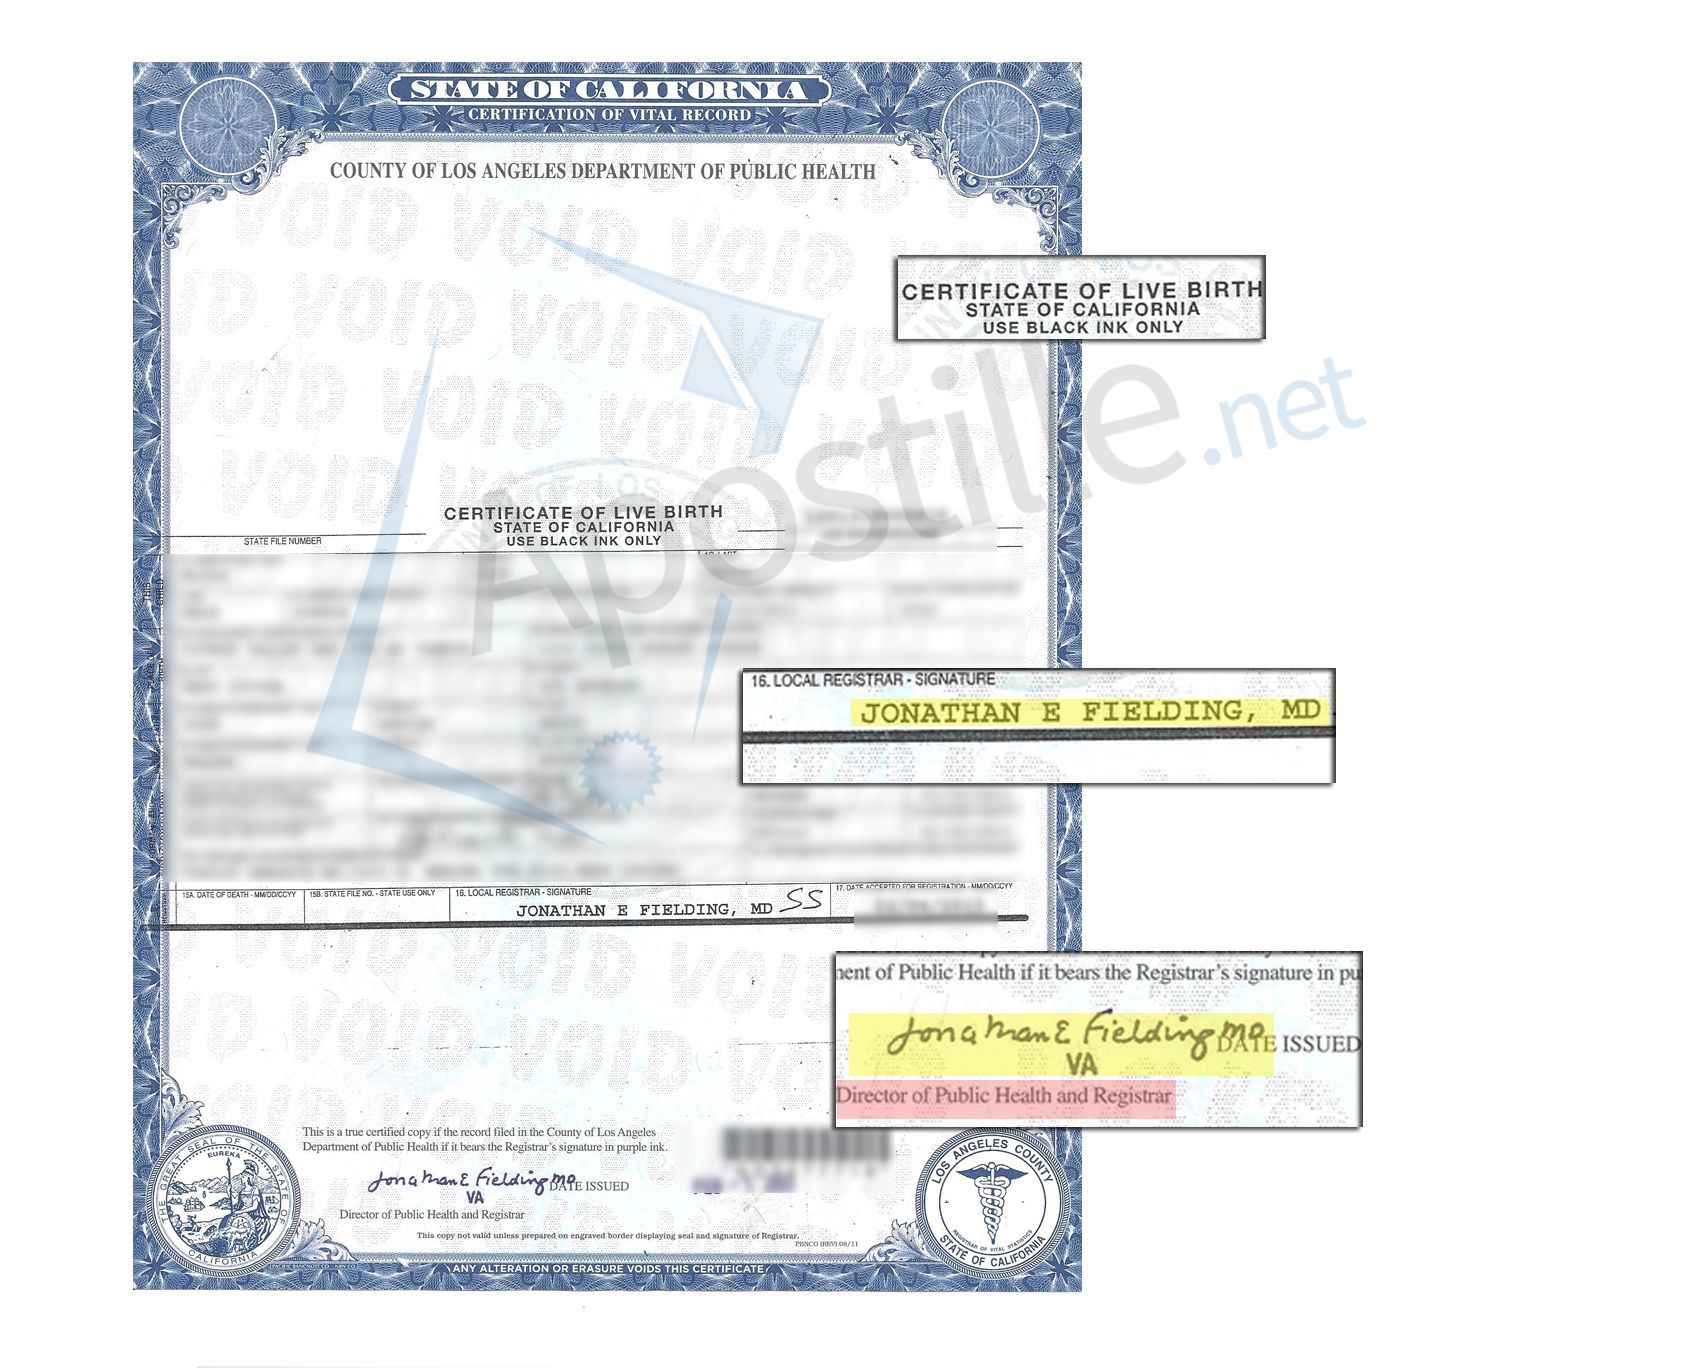 Los Angeles Certificate Of Live Birth signed by Jonathan E